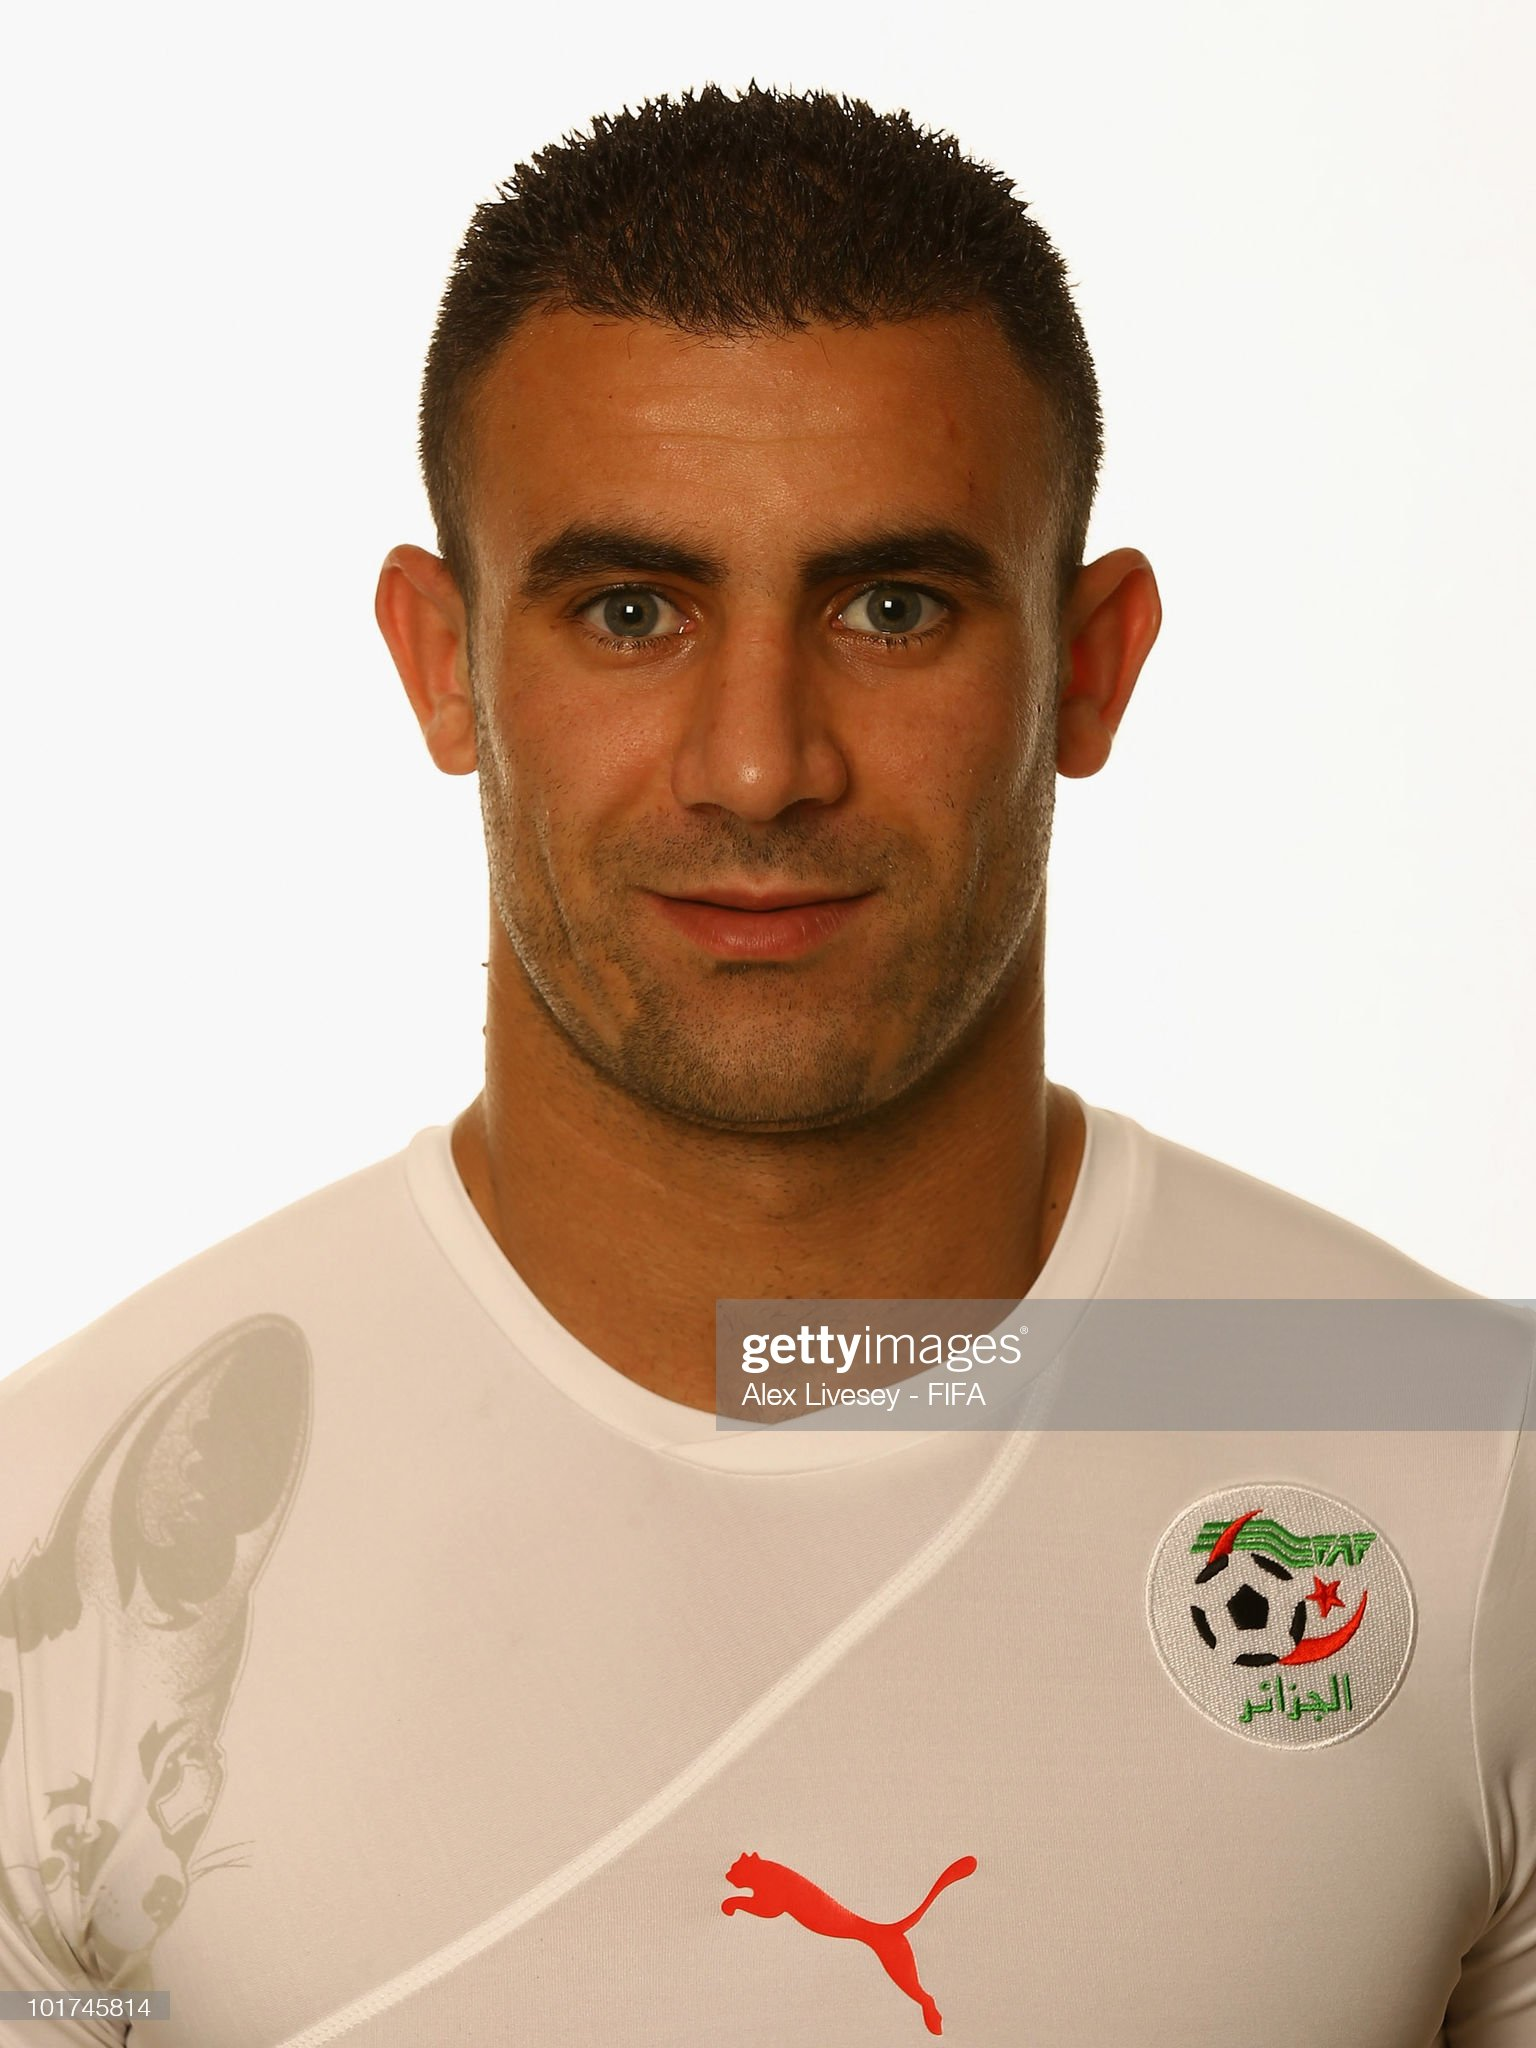 Norteafricanos Abdelkader-ghezzal-of-algeria-poses-during-the-official-fifa-world-picture-id101745814?s=2048x2048